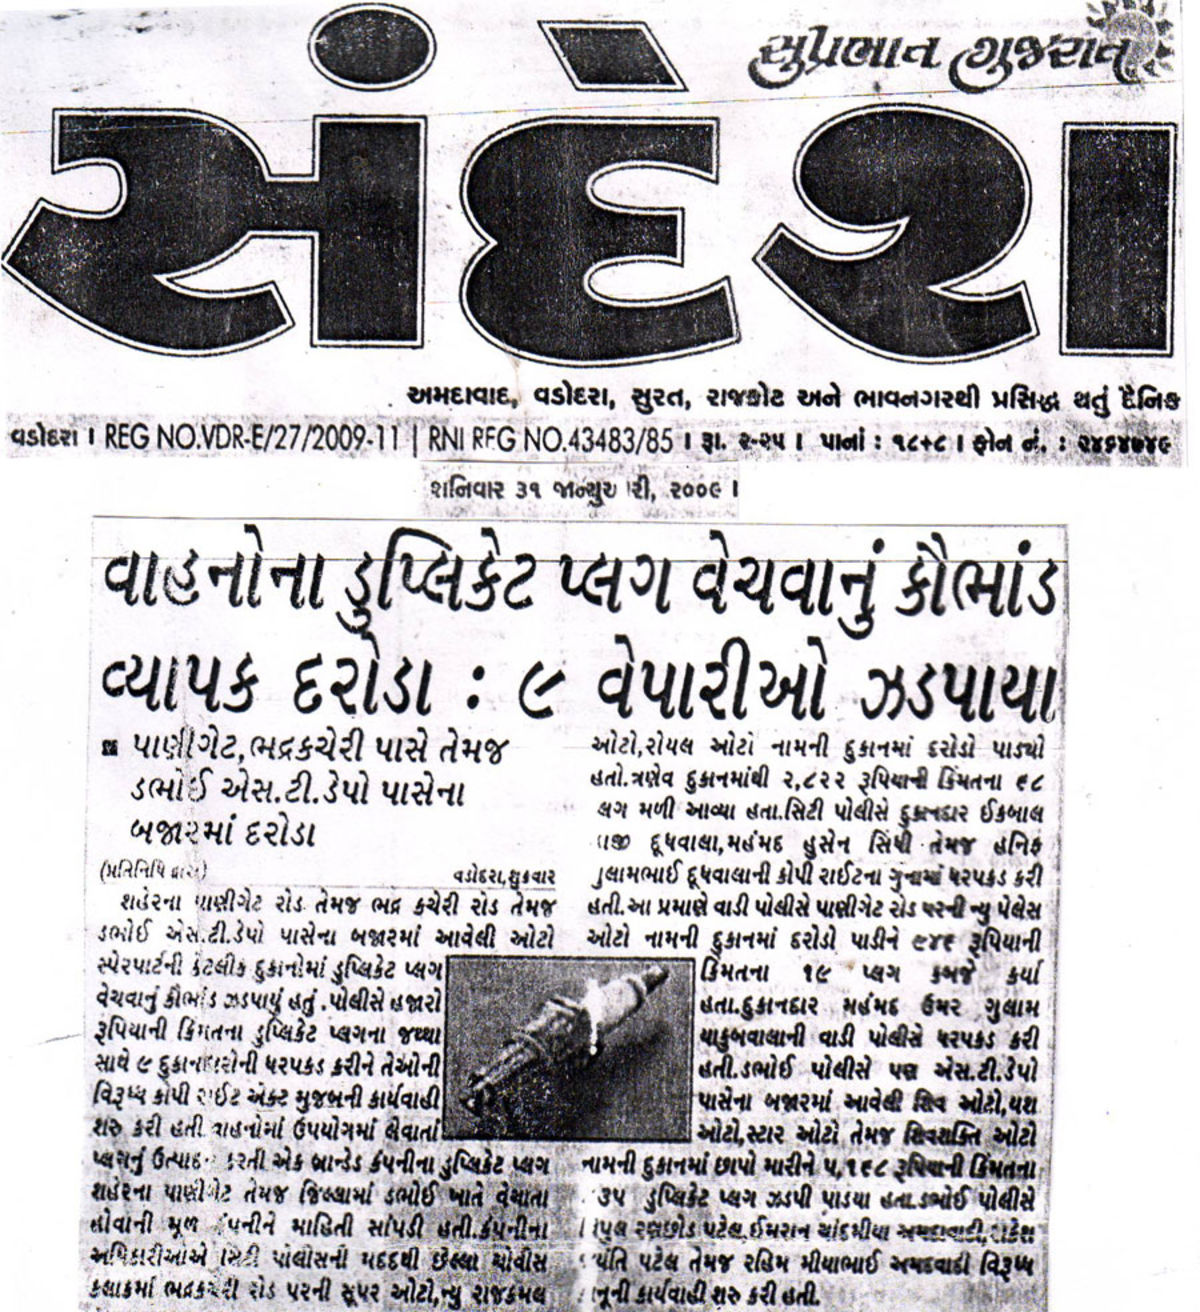 Headline for Sandesh - No 1 Gujarati Newspaper